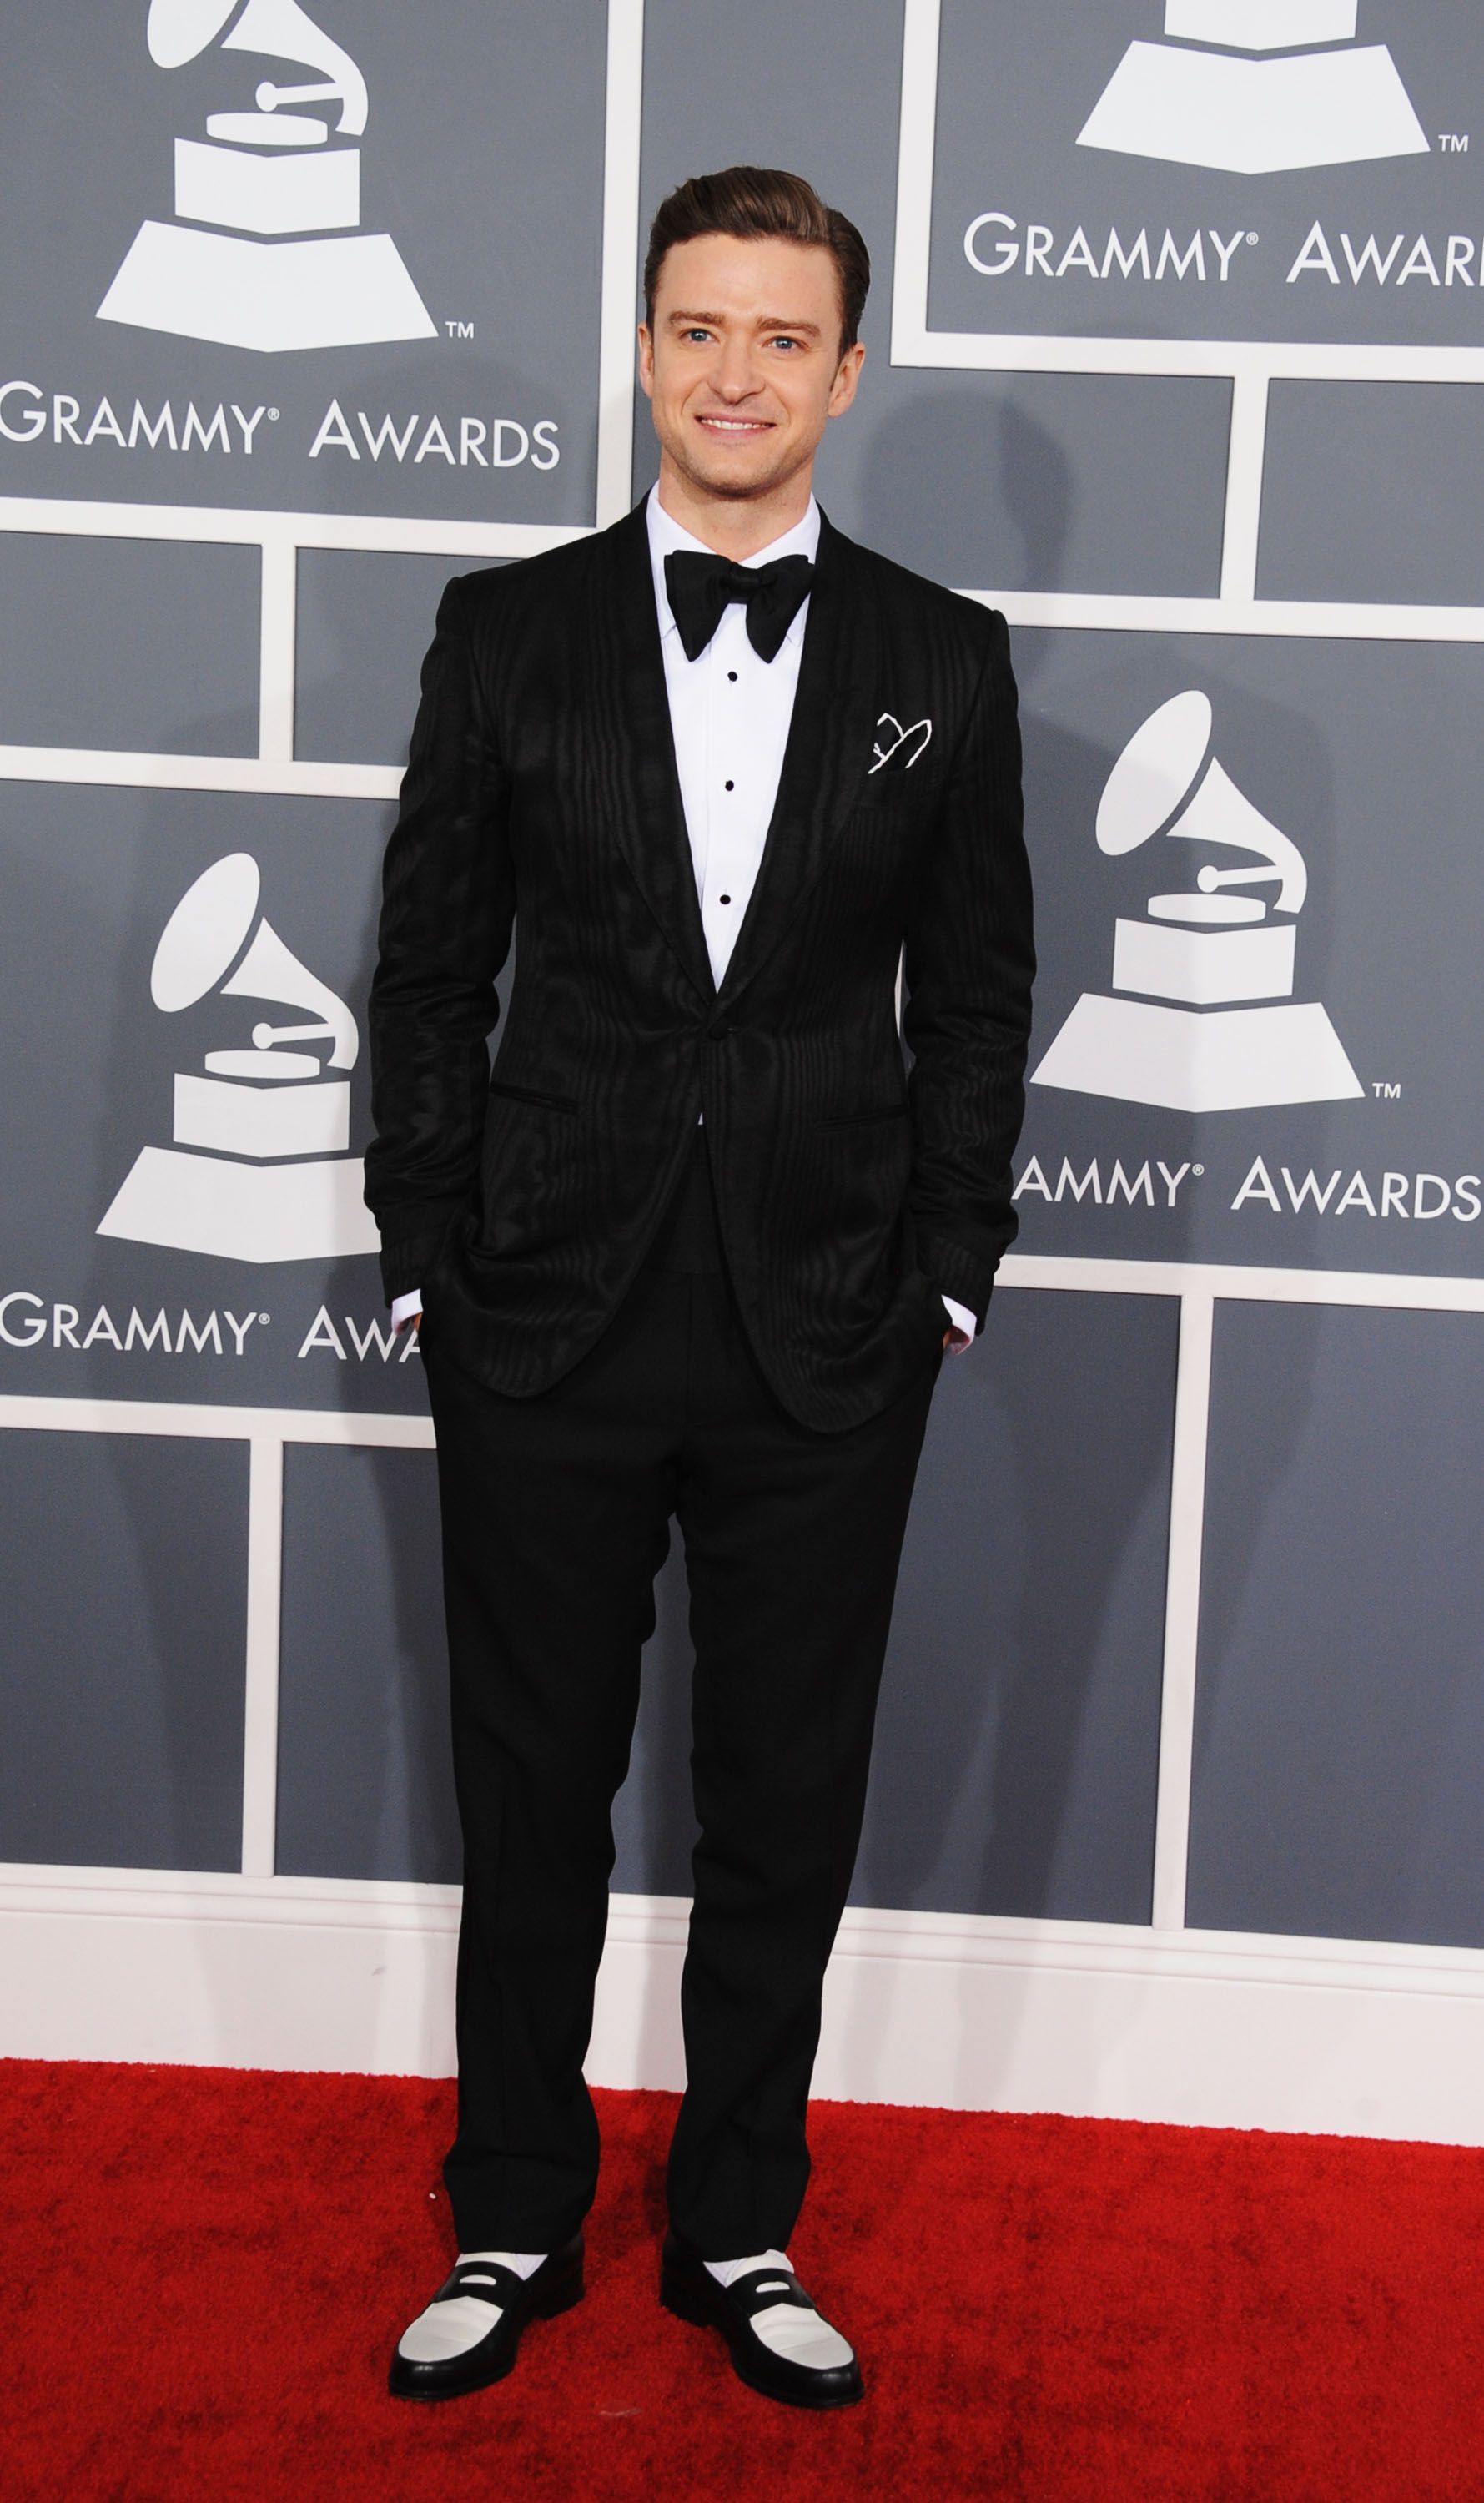 LOS ANGELES, CA - FEBRUARY 10: Singer Justin Timberlake attends the 55th Annual GRAMMY Awards at STAPLES Center on February 10, 2013 in Los Angeles, California. (Photo by Steve Granitz/WireImage)